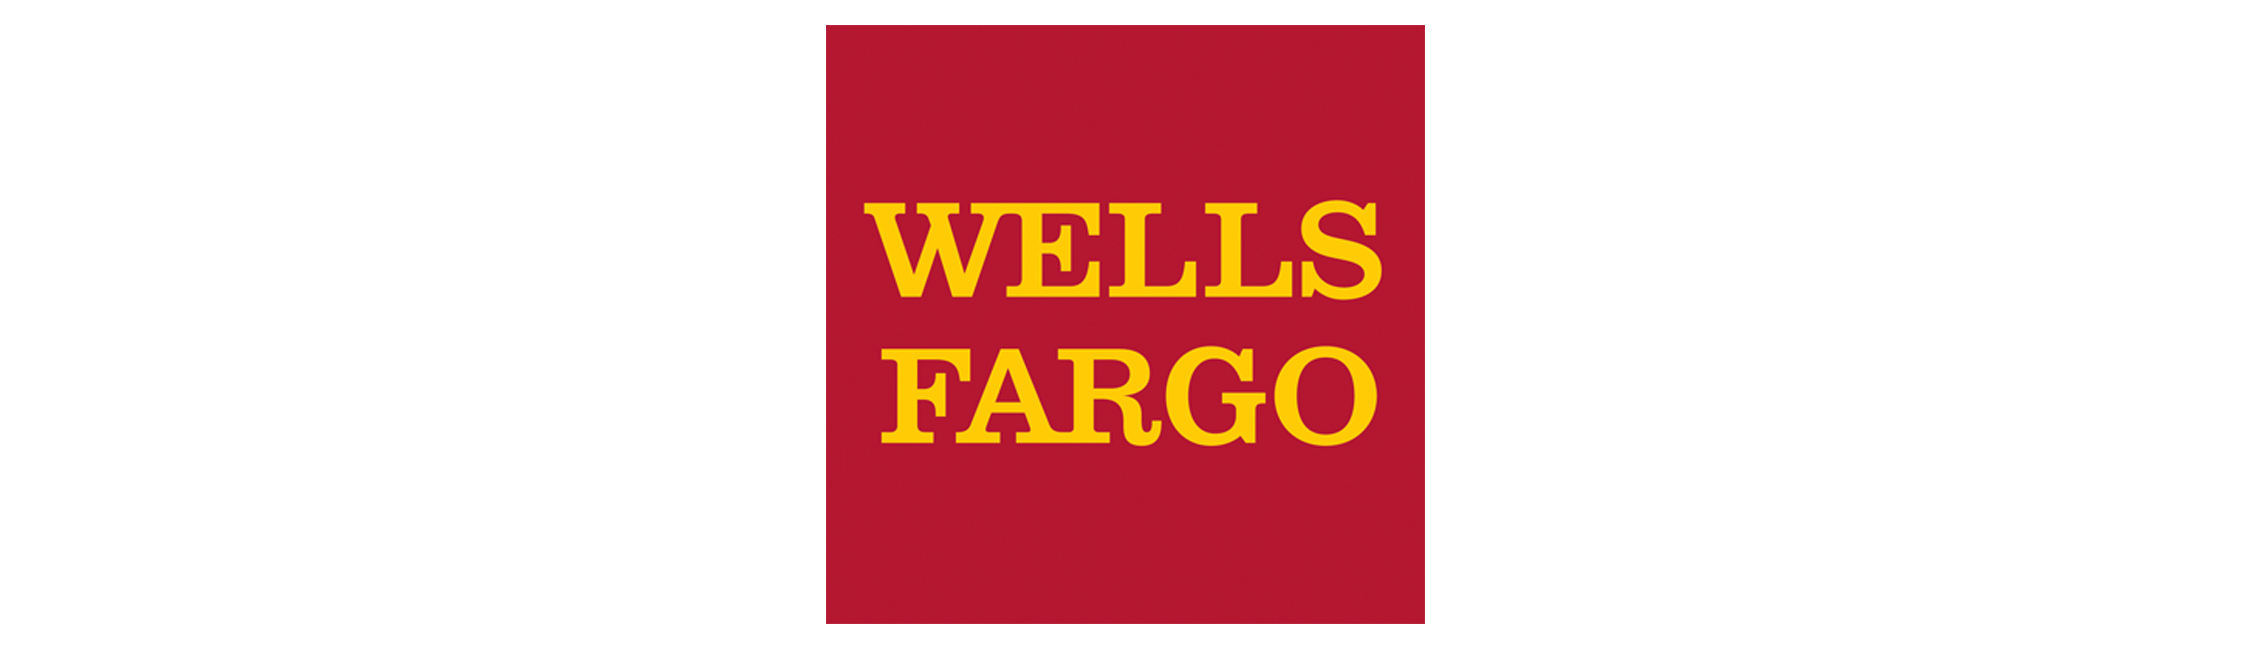 wells fargo division of student affairs